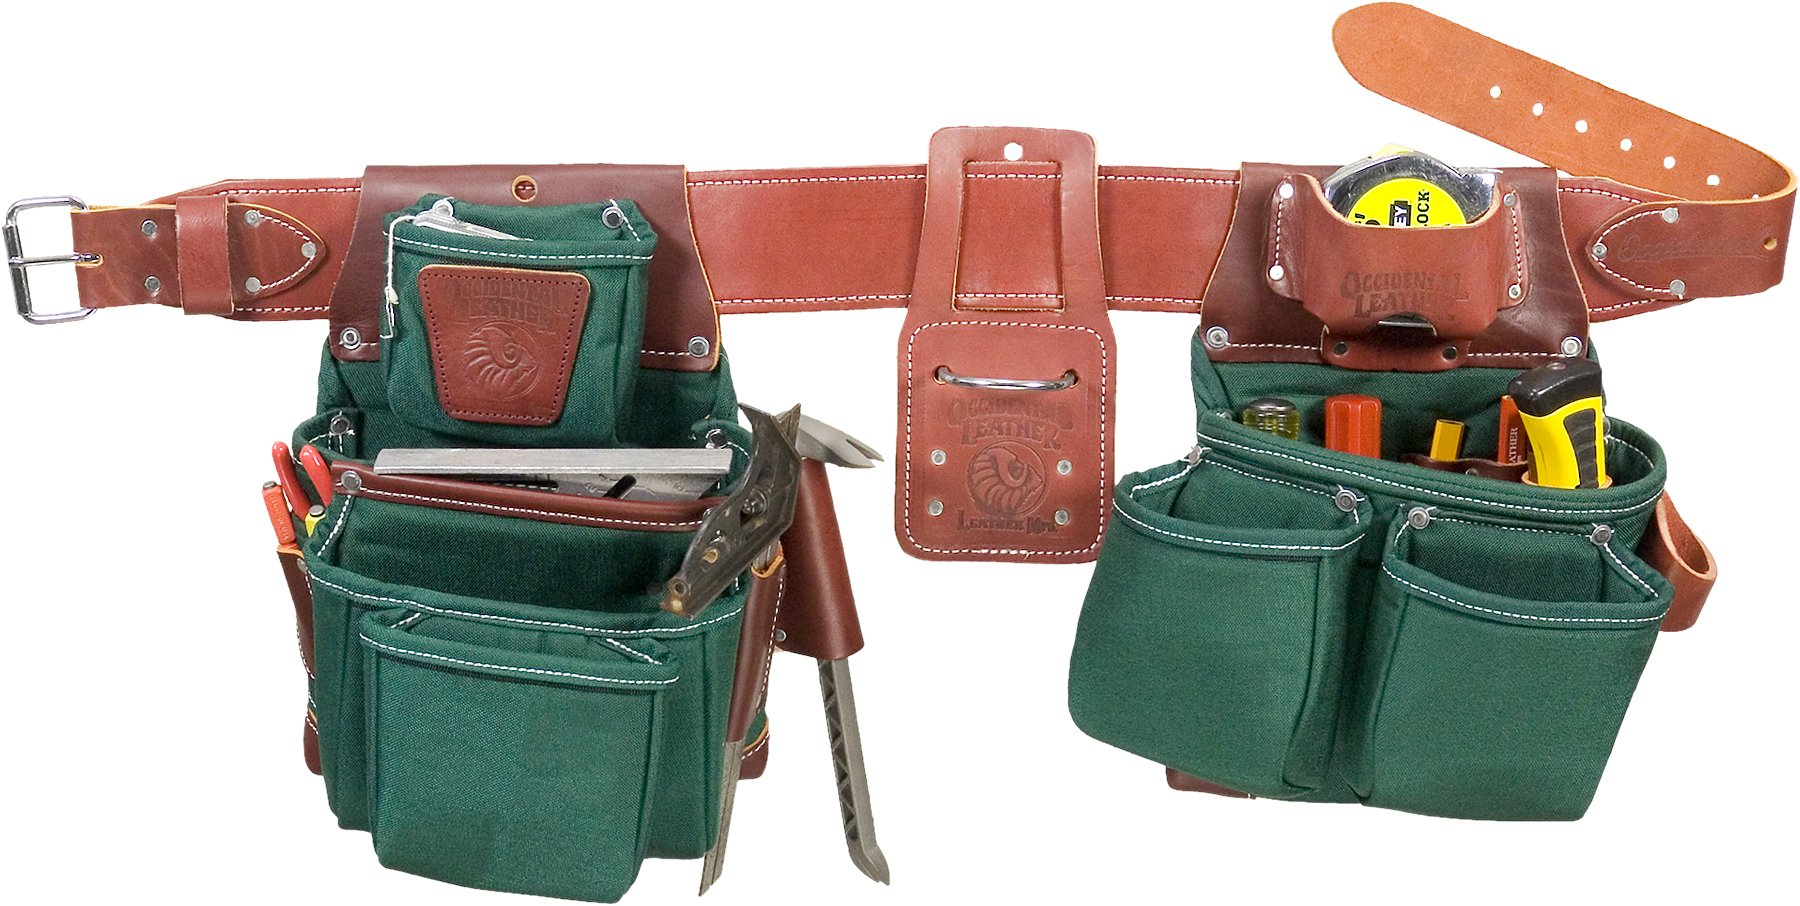 Occidental Leather 8089 M OxyLights 7 Bag Framer Set product image 9f4ccbbb8793a